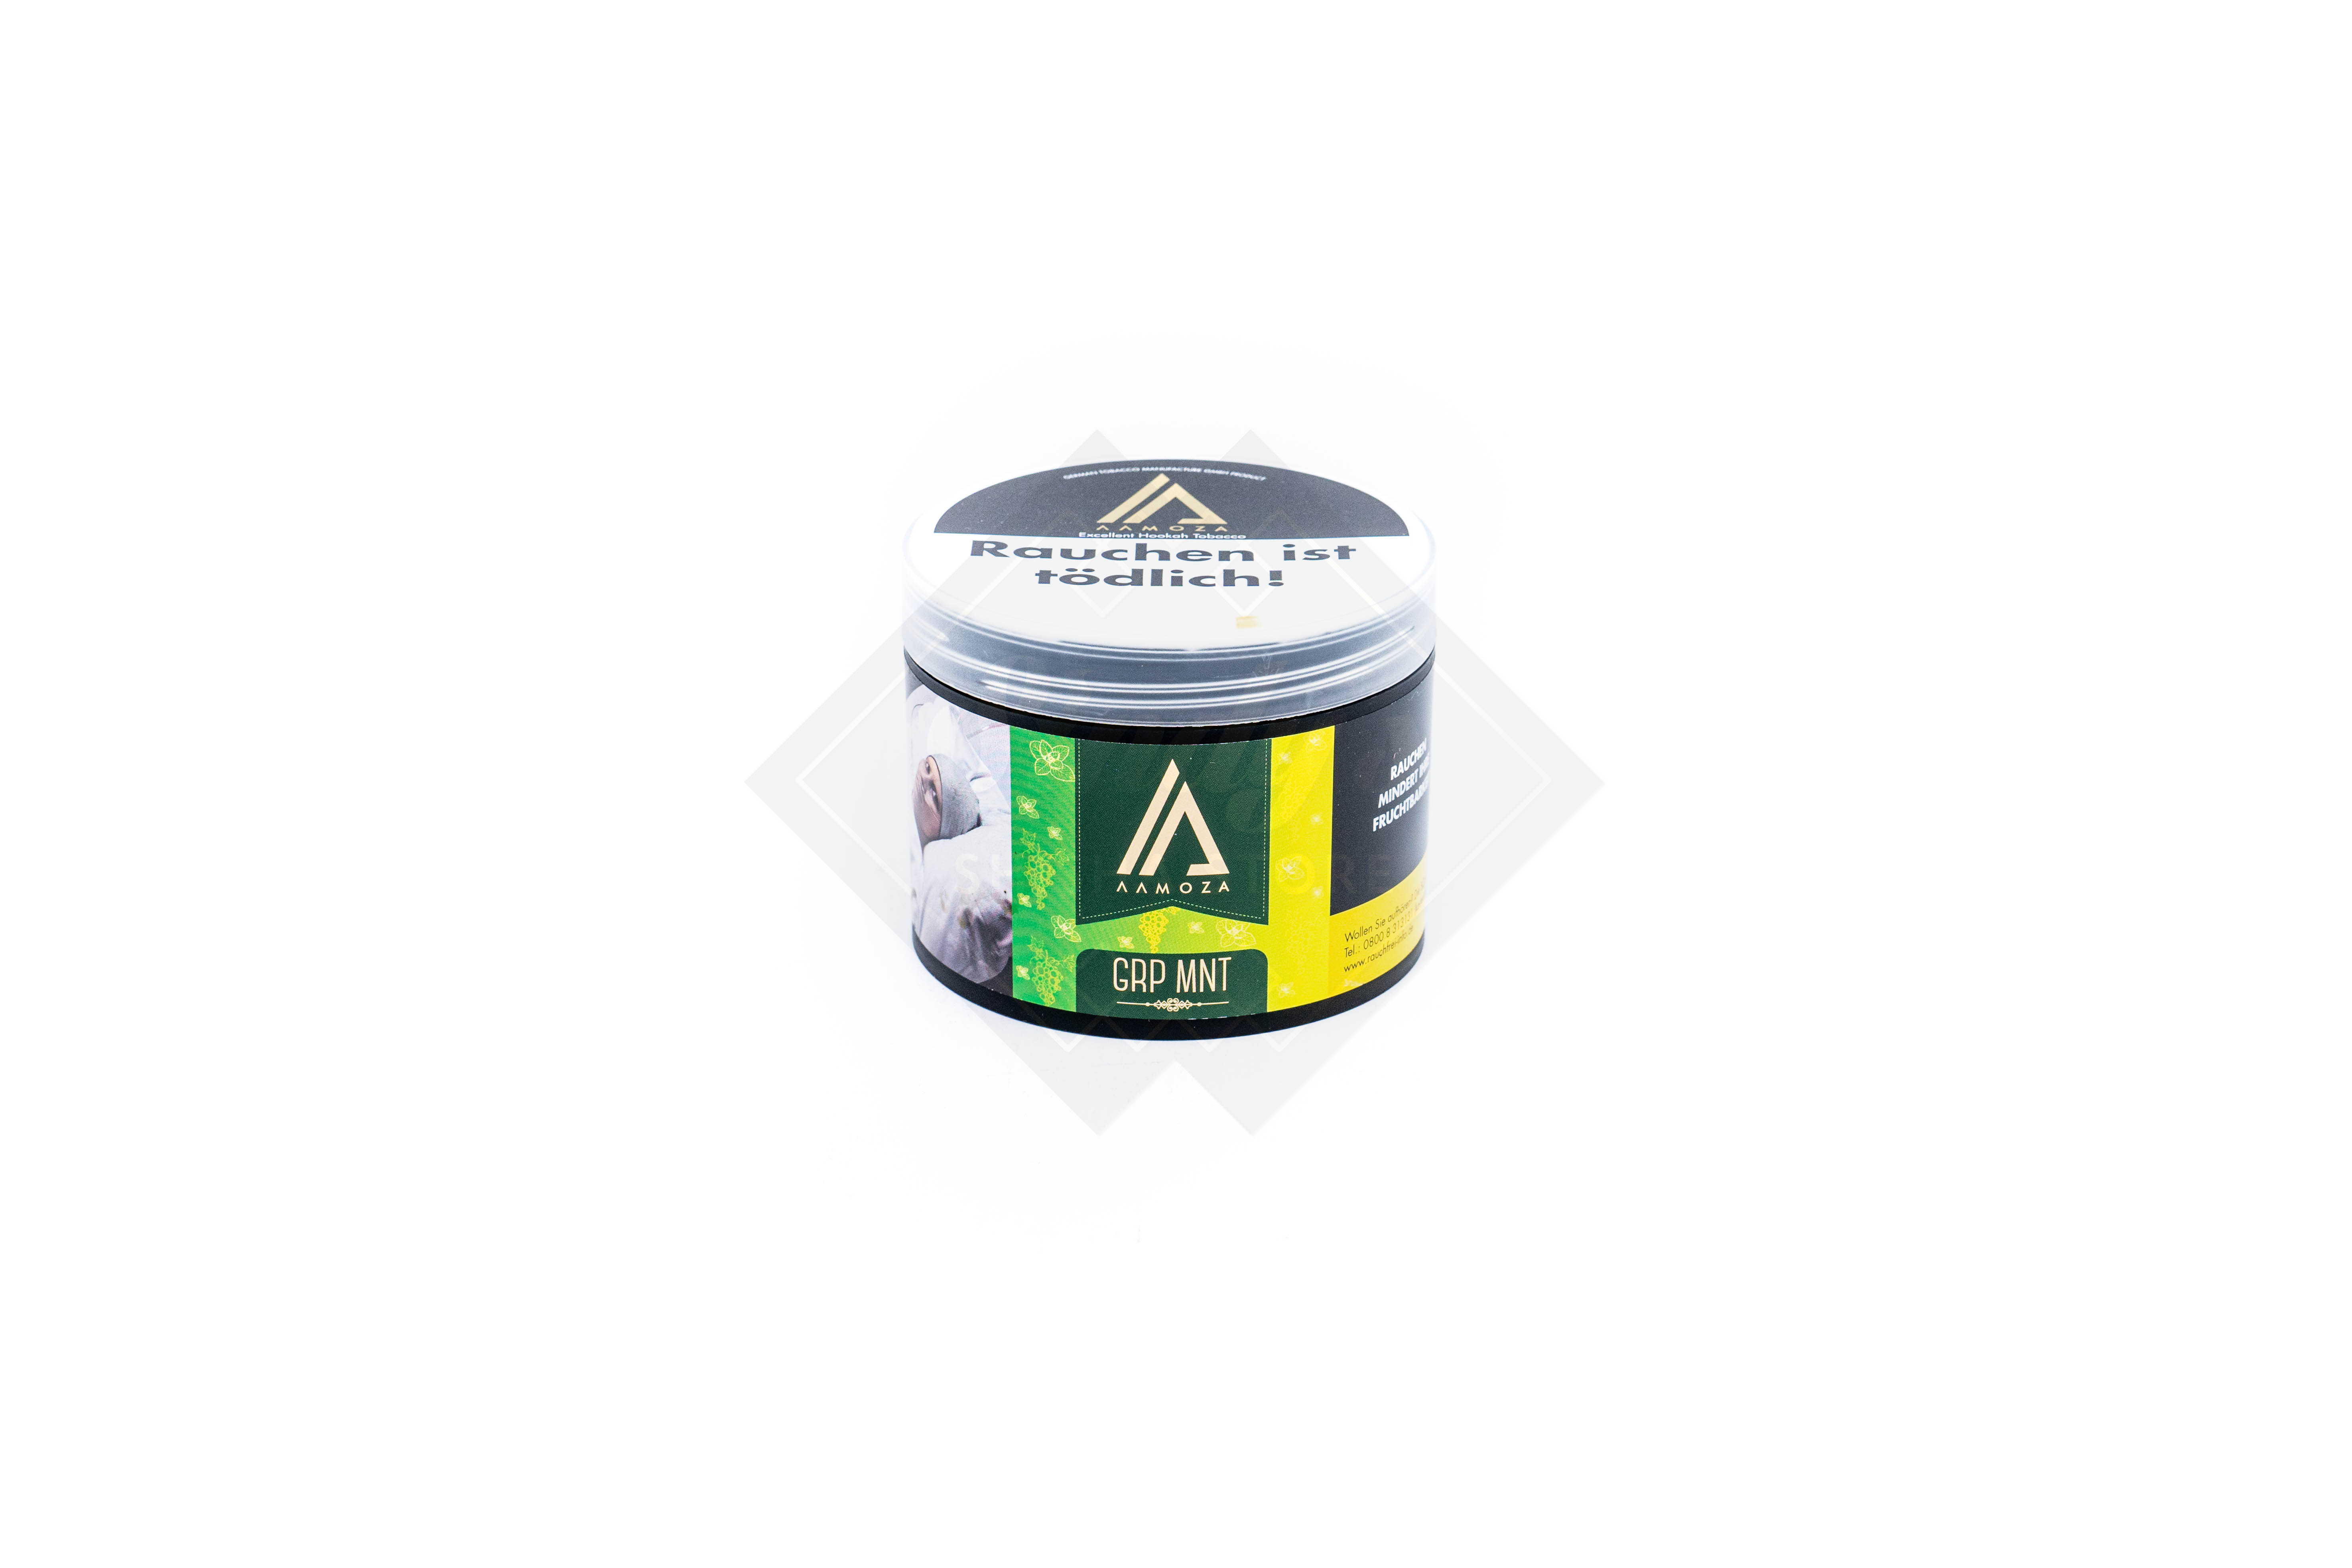 Aamoza - Grp Mnt 200g